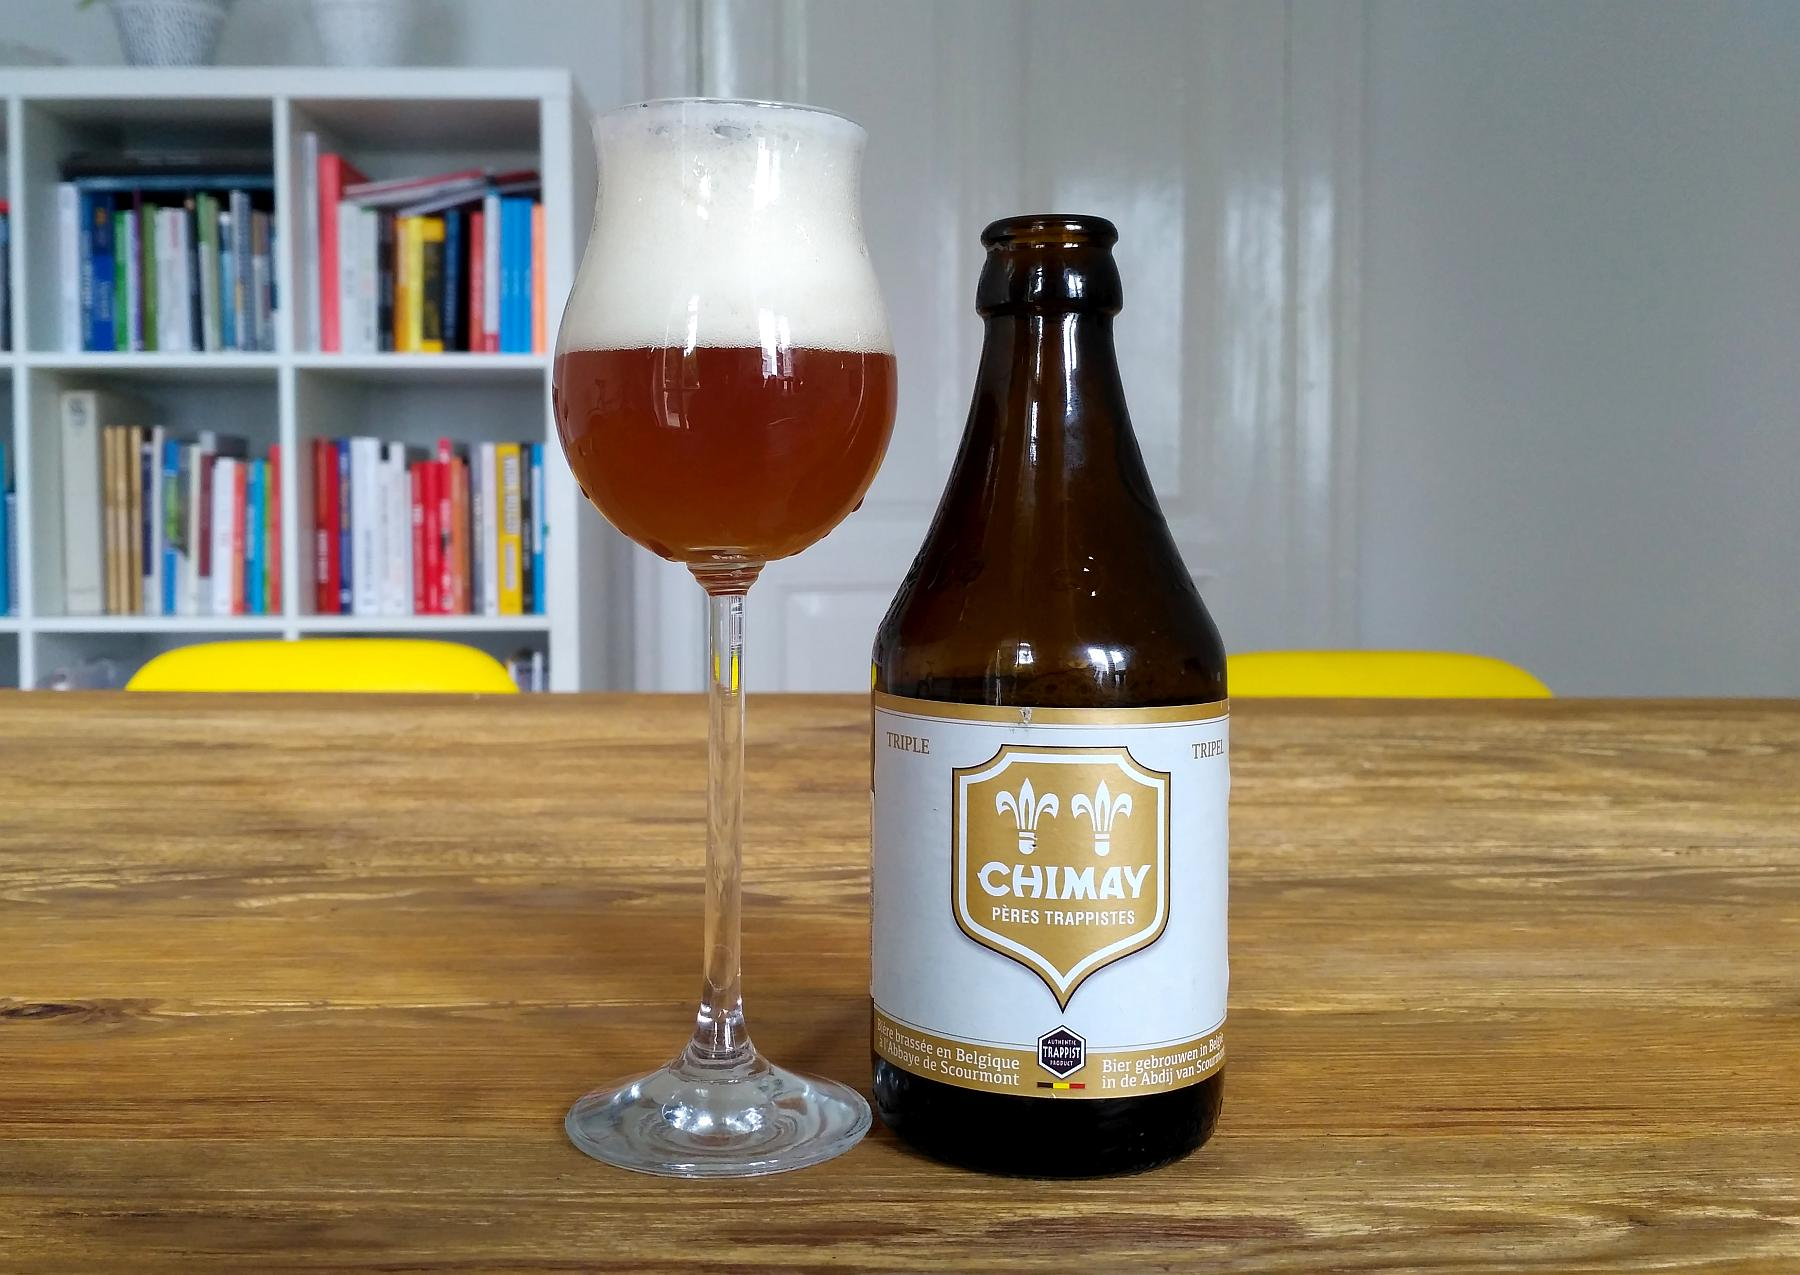 Chimay White Abbey Tripel